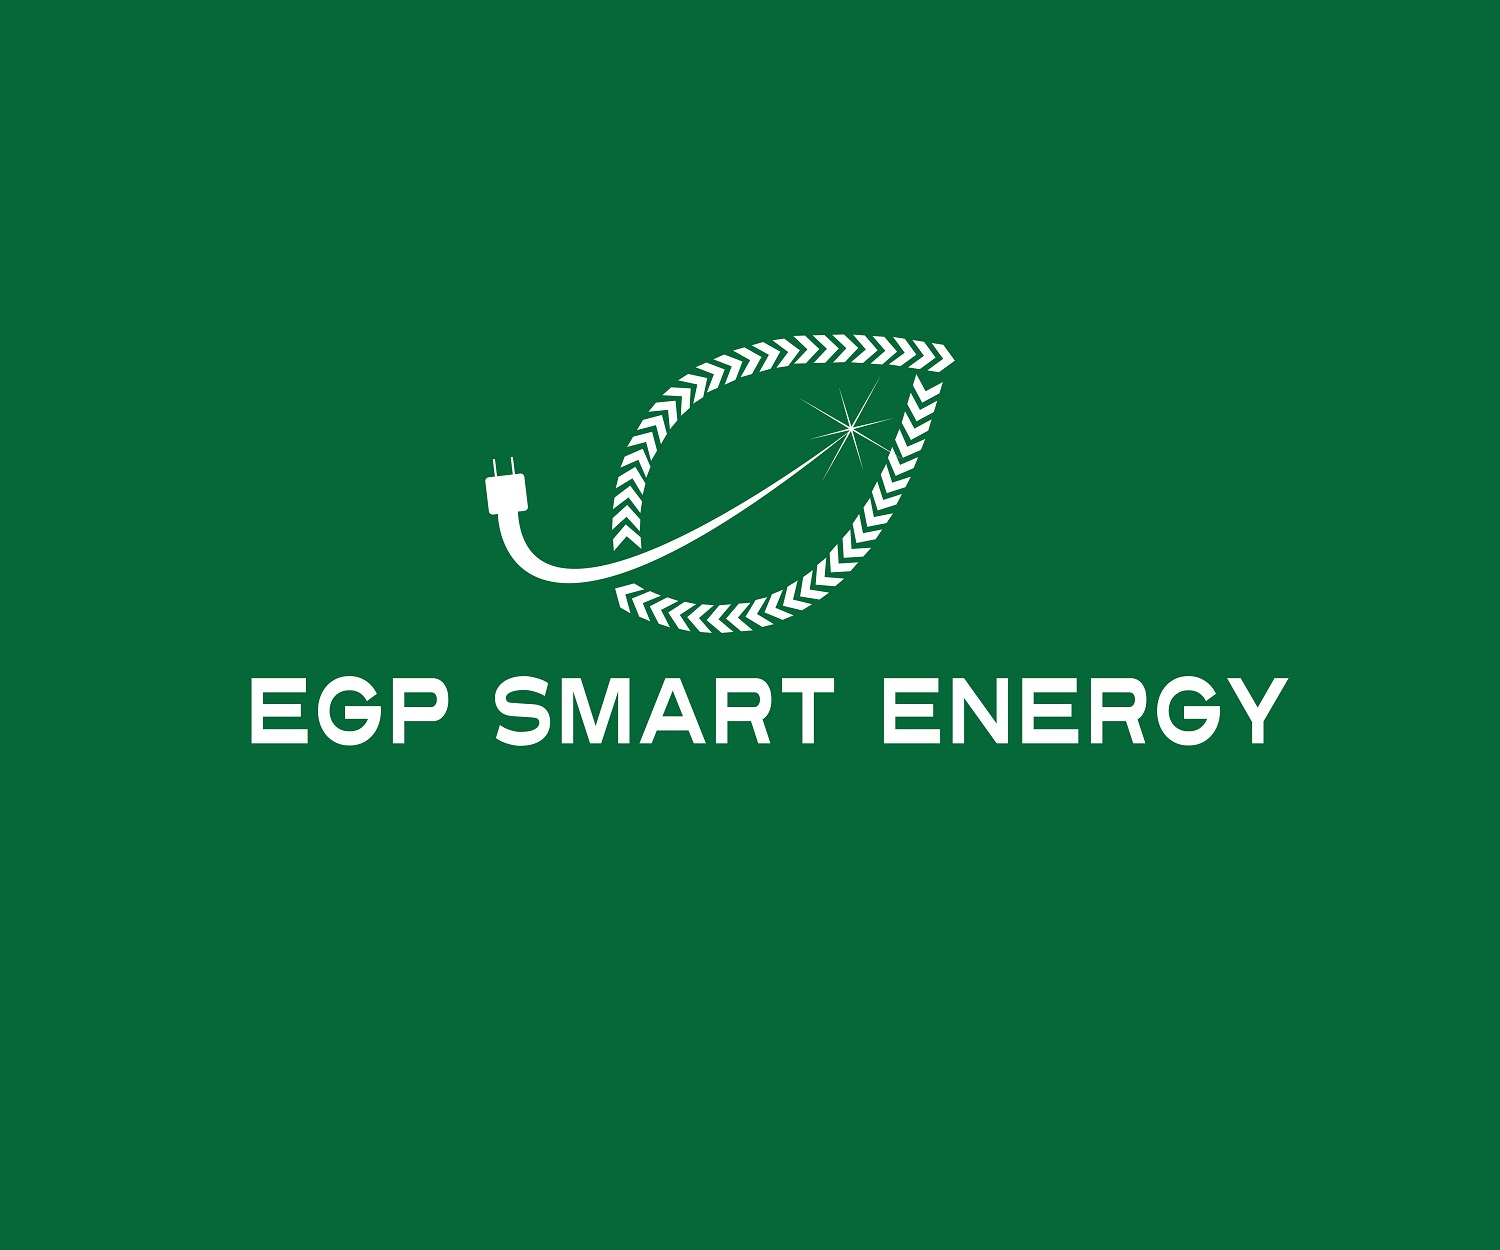 Logo Design by jhunzkie24 - Entry No. 38 in the Logo Design Contest Captivating Logo Design for EGP Smart Energy.